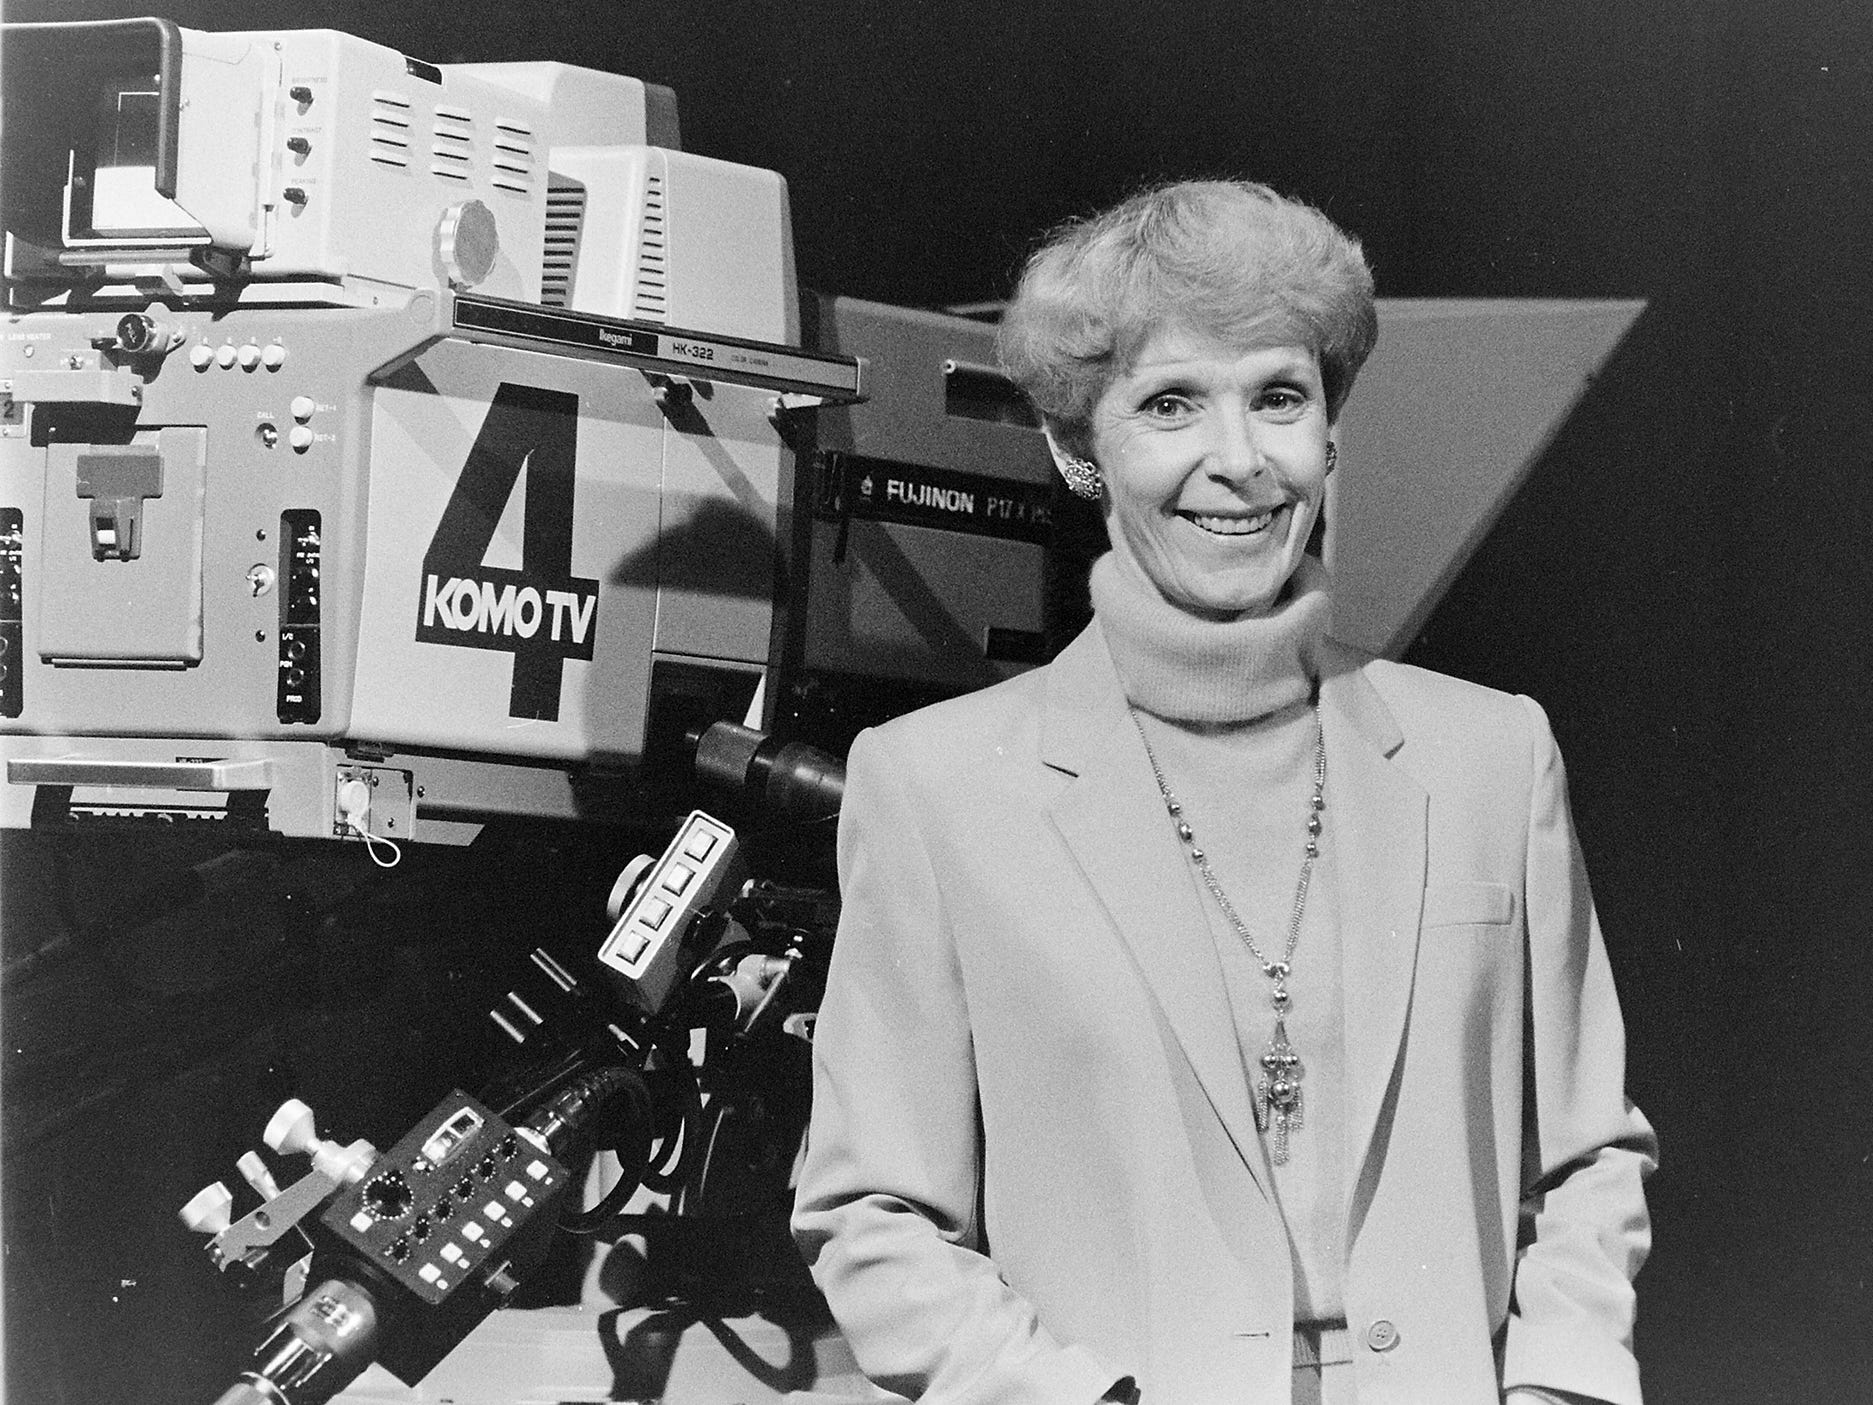 03/21/84